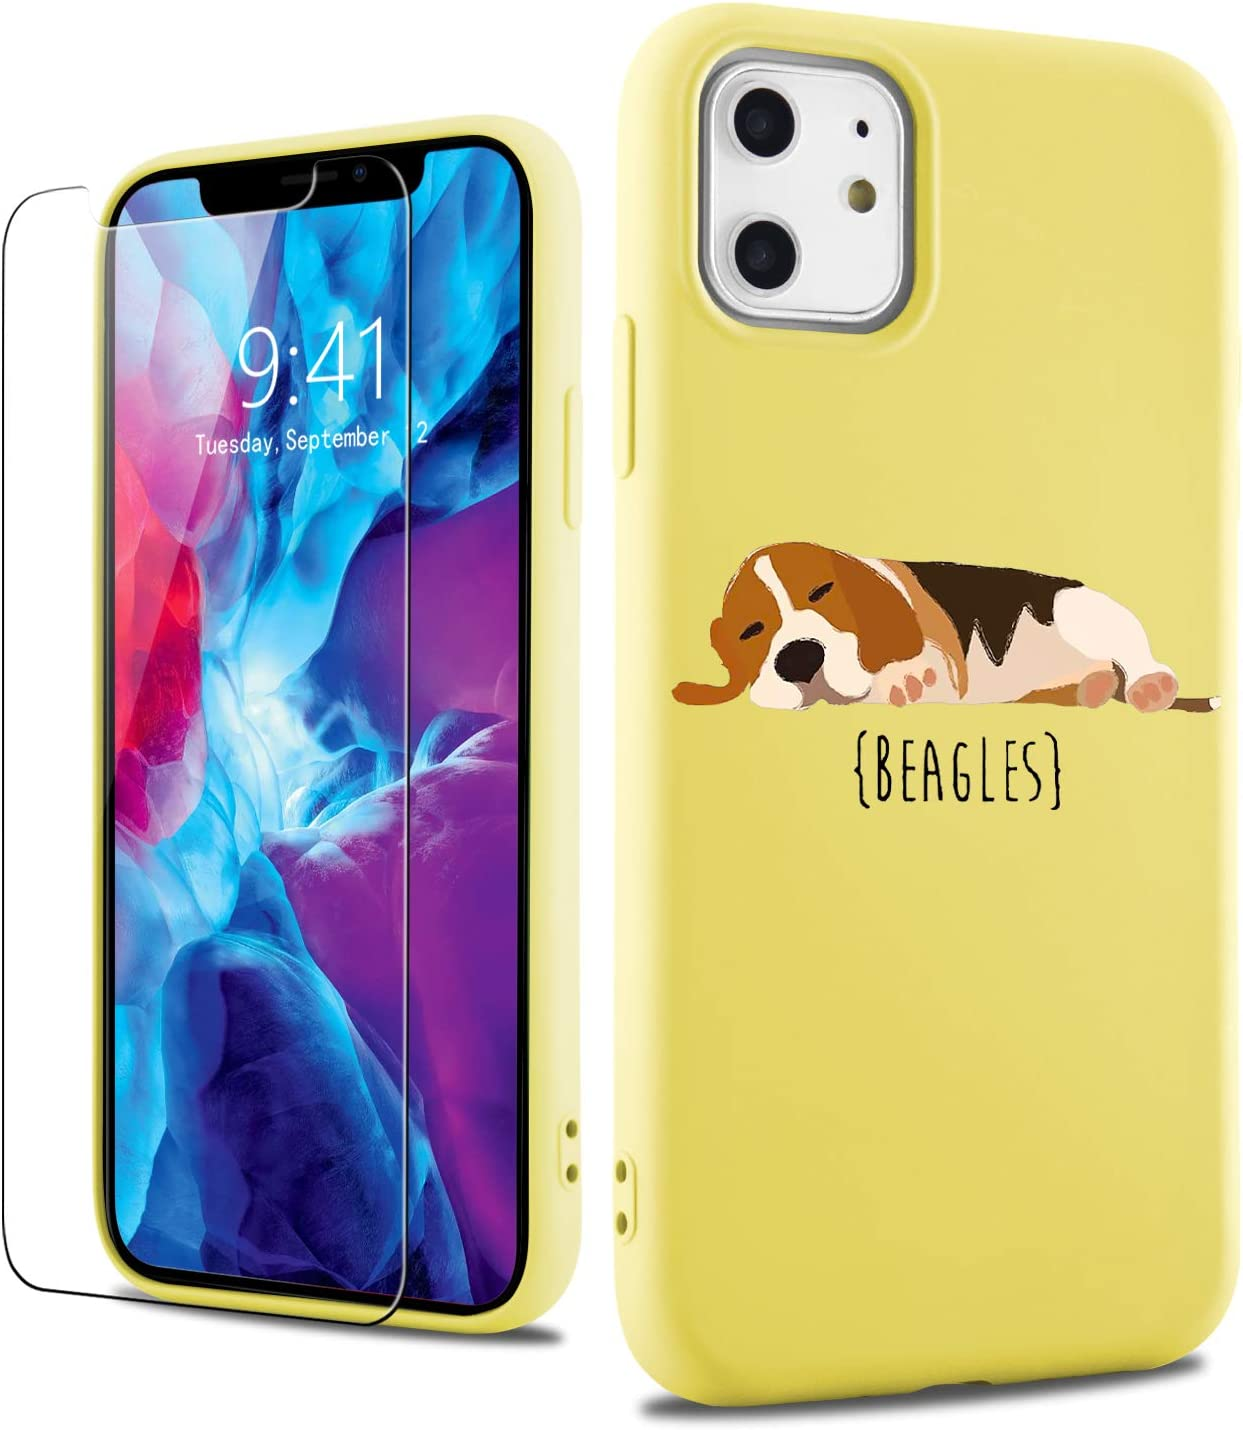 LuGeKe Liquid Silicone Phone Case for iPhoneXR,Beagles Dog Print Gel Rubber Case Cover,Soft Flocking Lining Shockproof Protective Phonecase with Tempered Glass Screen Protector